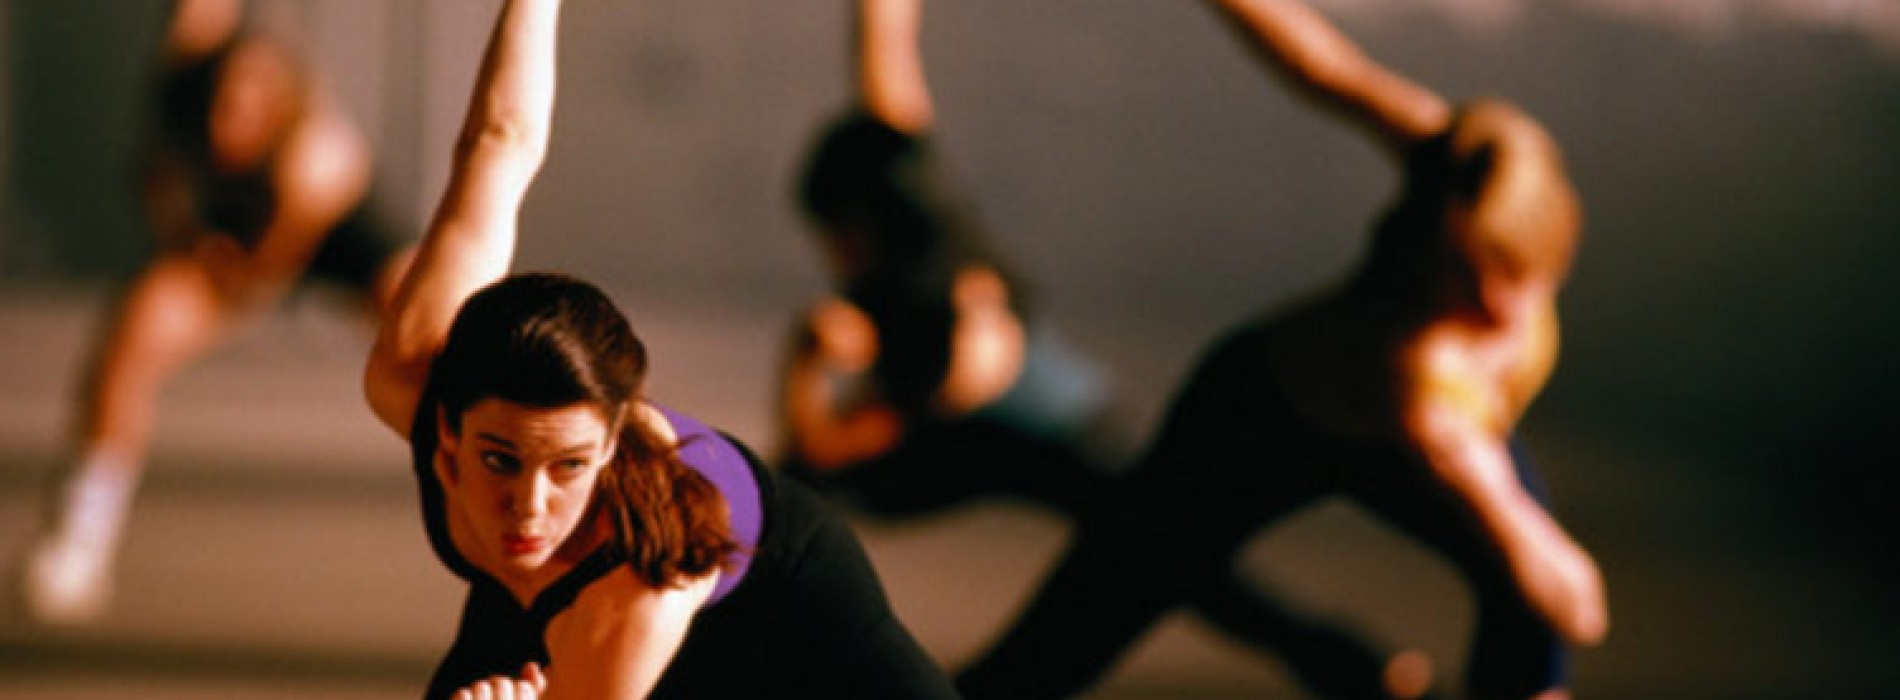 So Many Aerobic Exercises around Us which Can Help Us Keep Fit